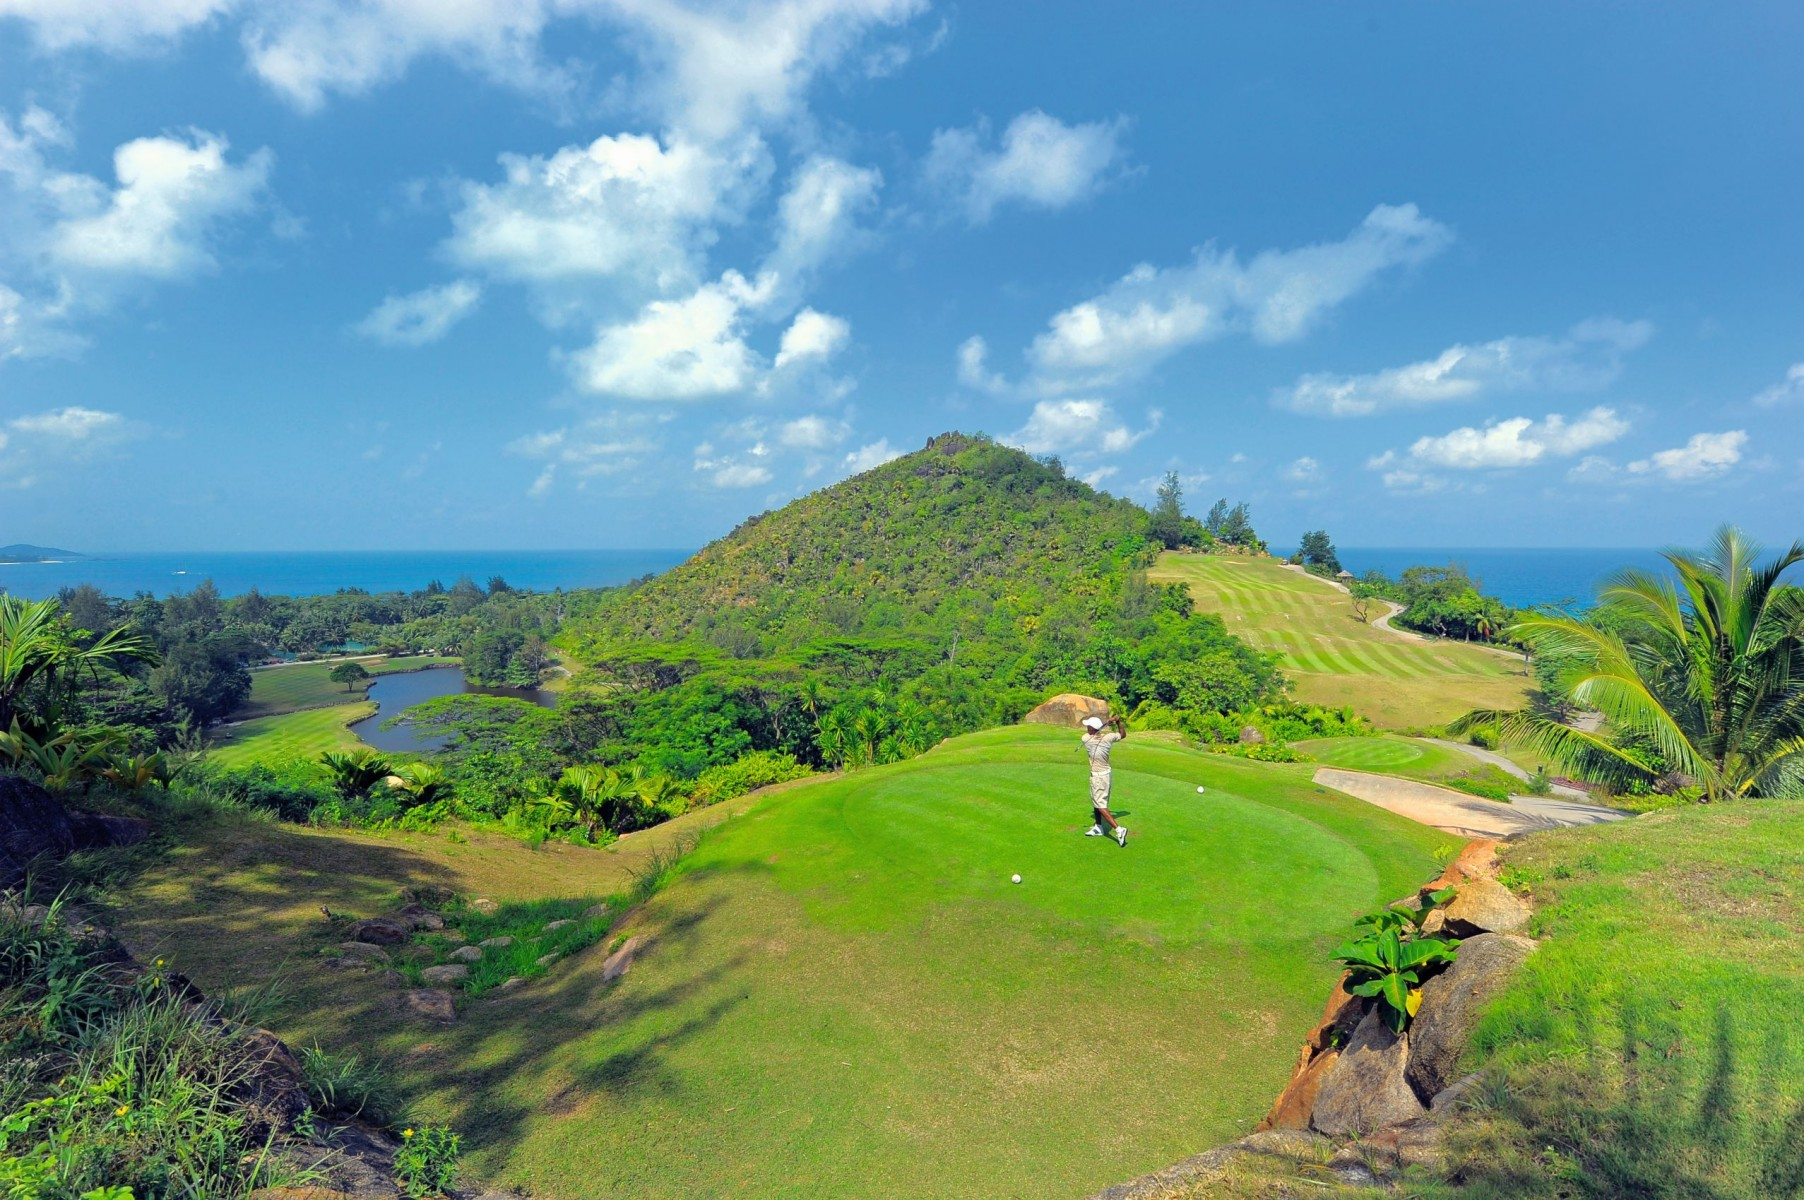 lemuria-seychelles-18-hole-golf-course-9